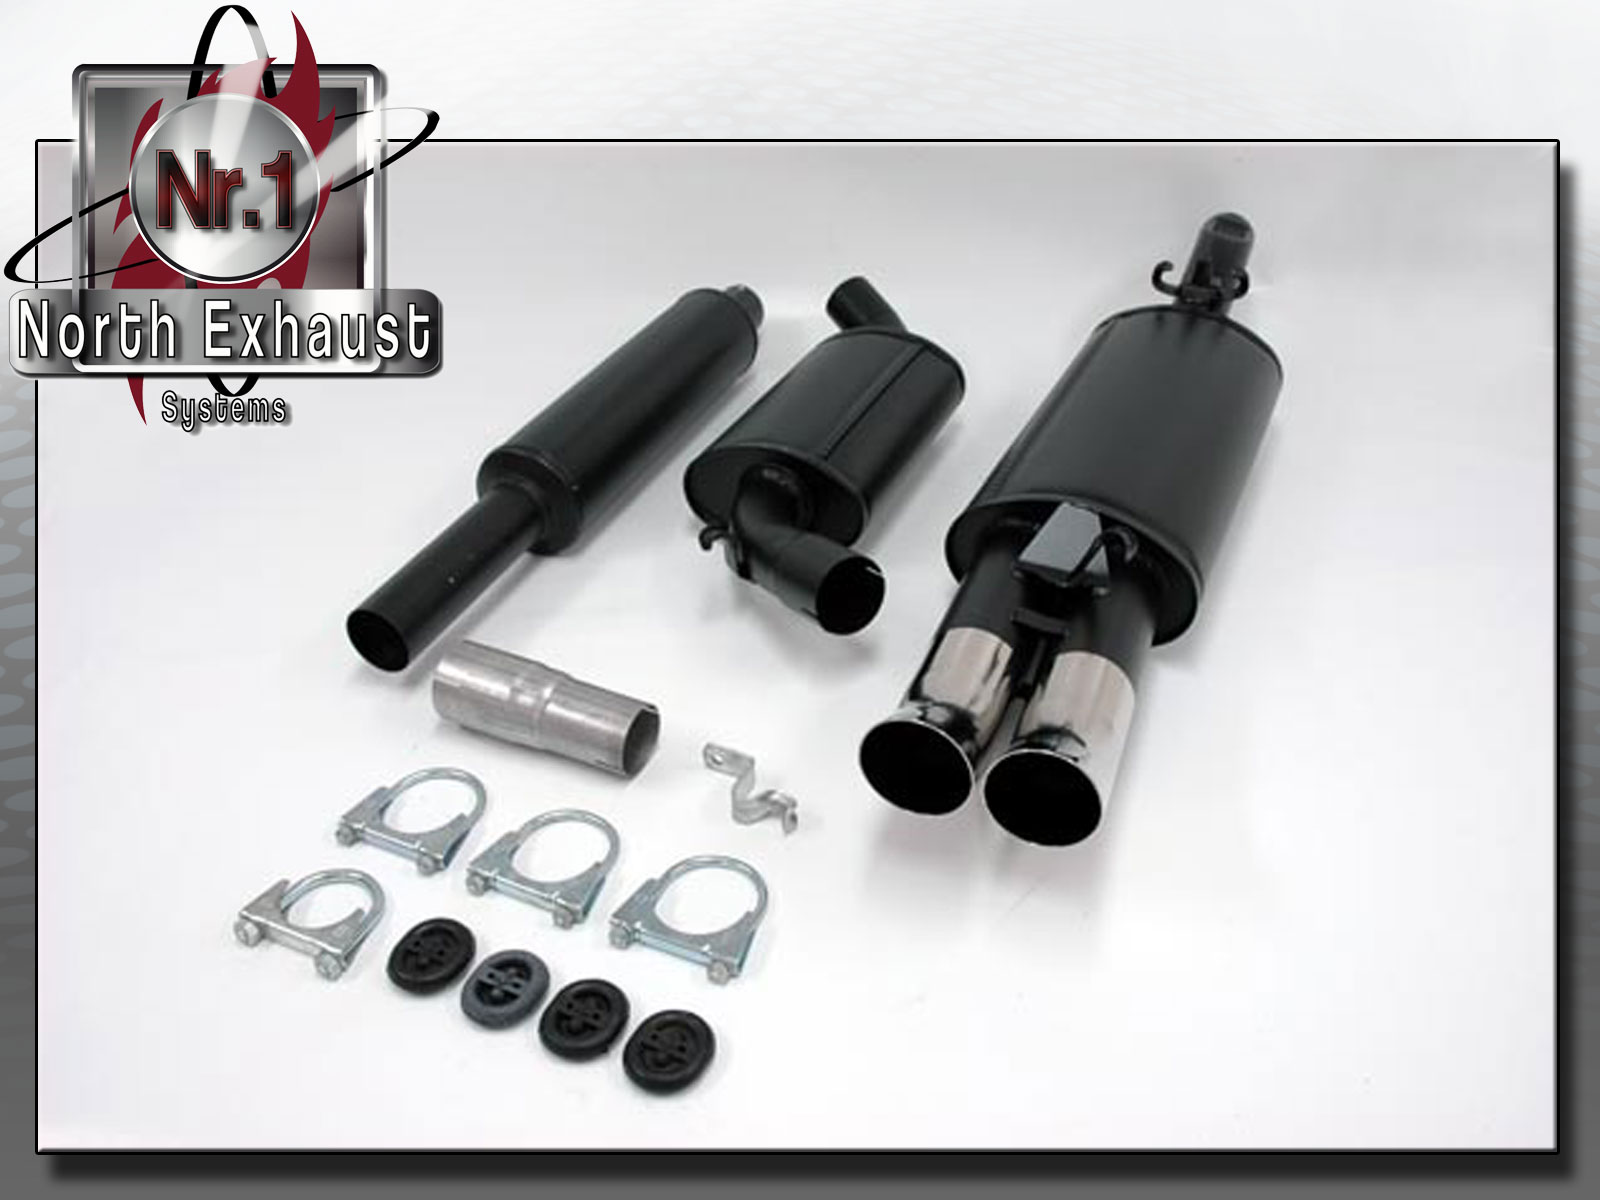 North-Exhaust-Gr-A-Sport-Komplettanlage-VW-Golf-II-GTI-16V-G60-2x76DTM